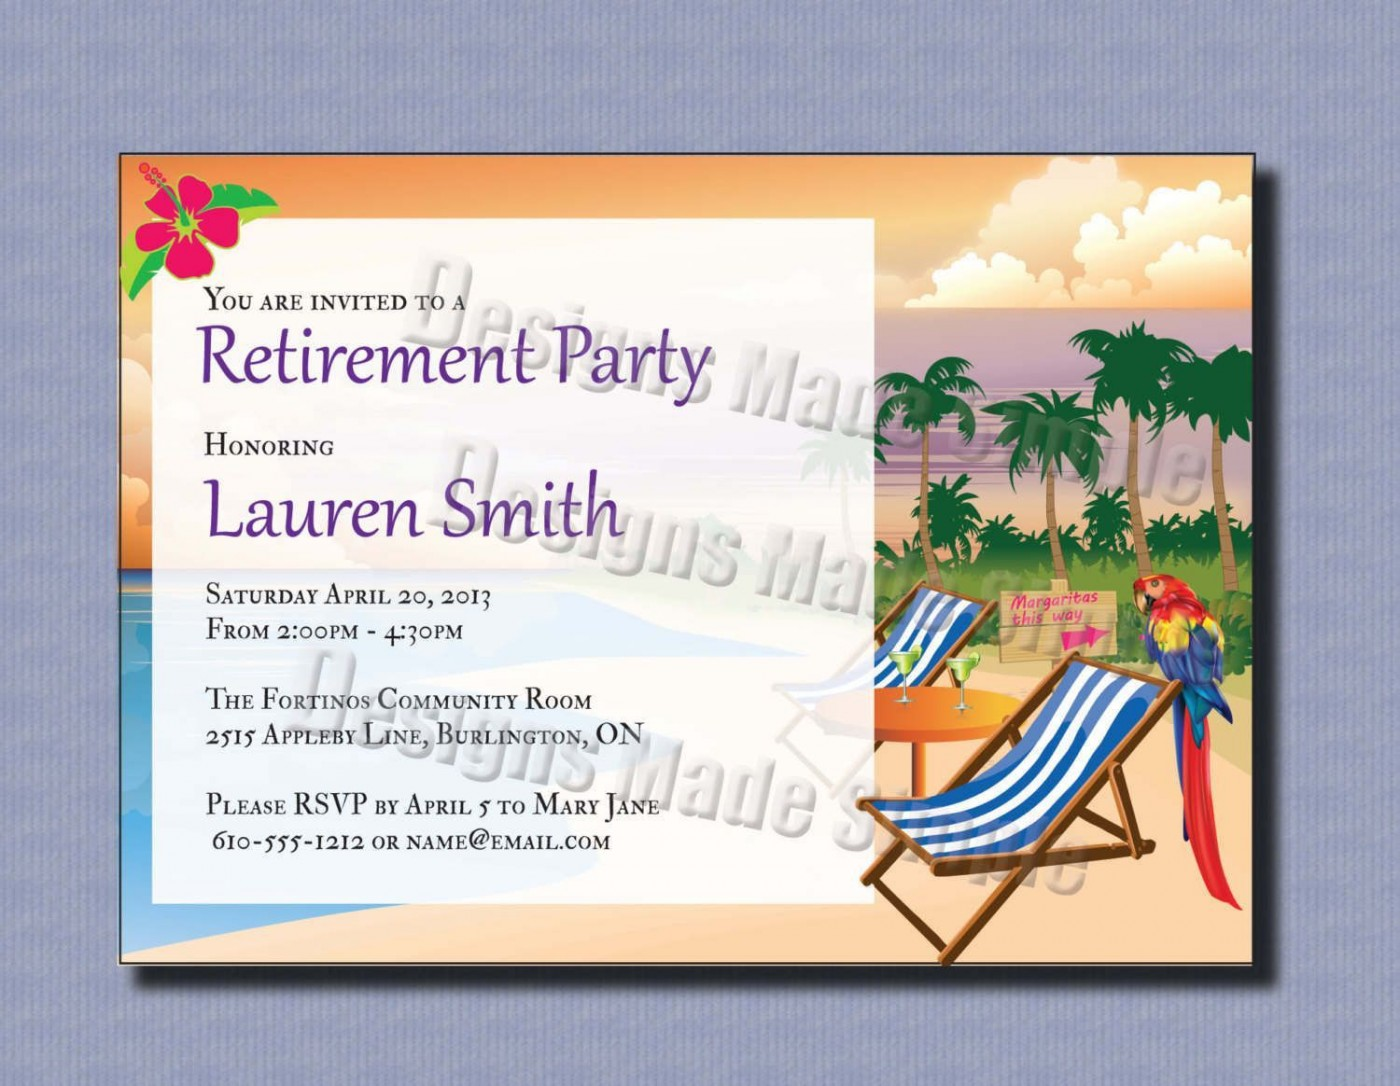 000 Phenomenal Retirement Invitation Template Free Inspiration  Party Printable For Word1400